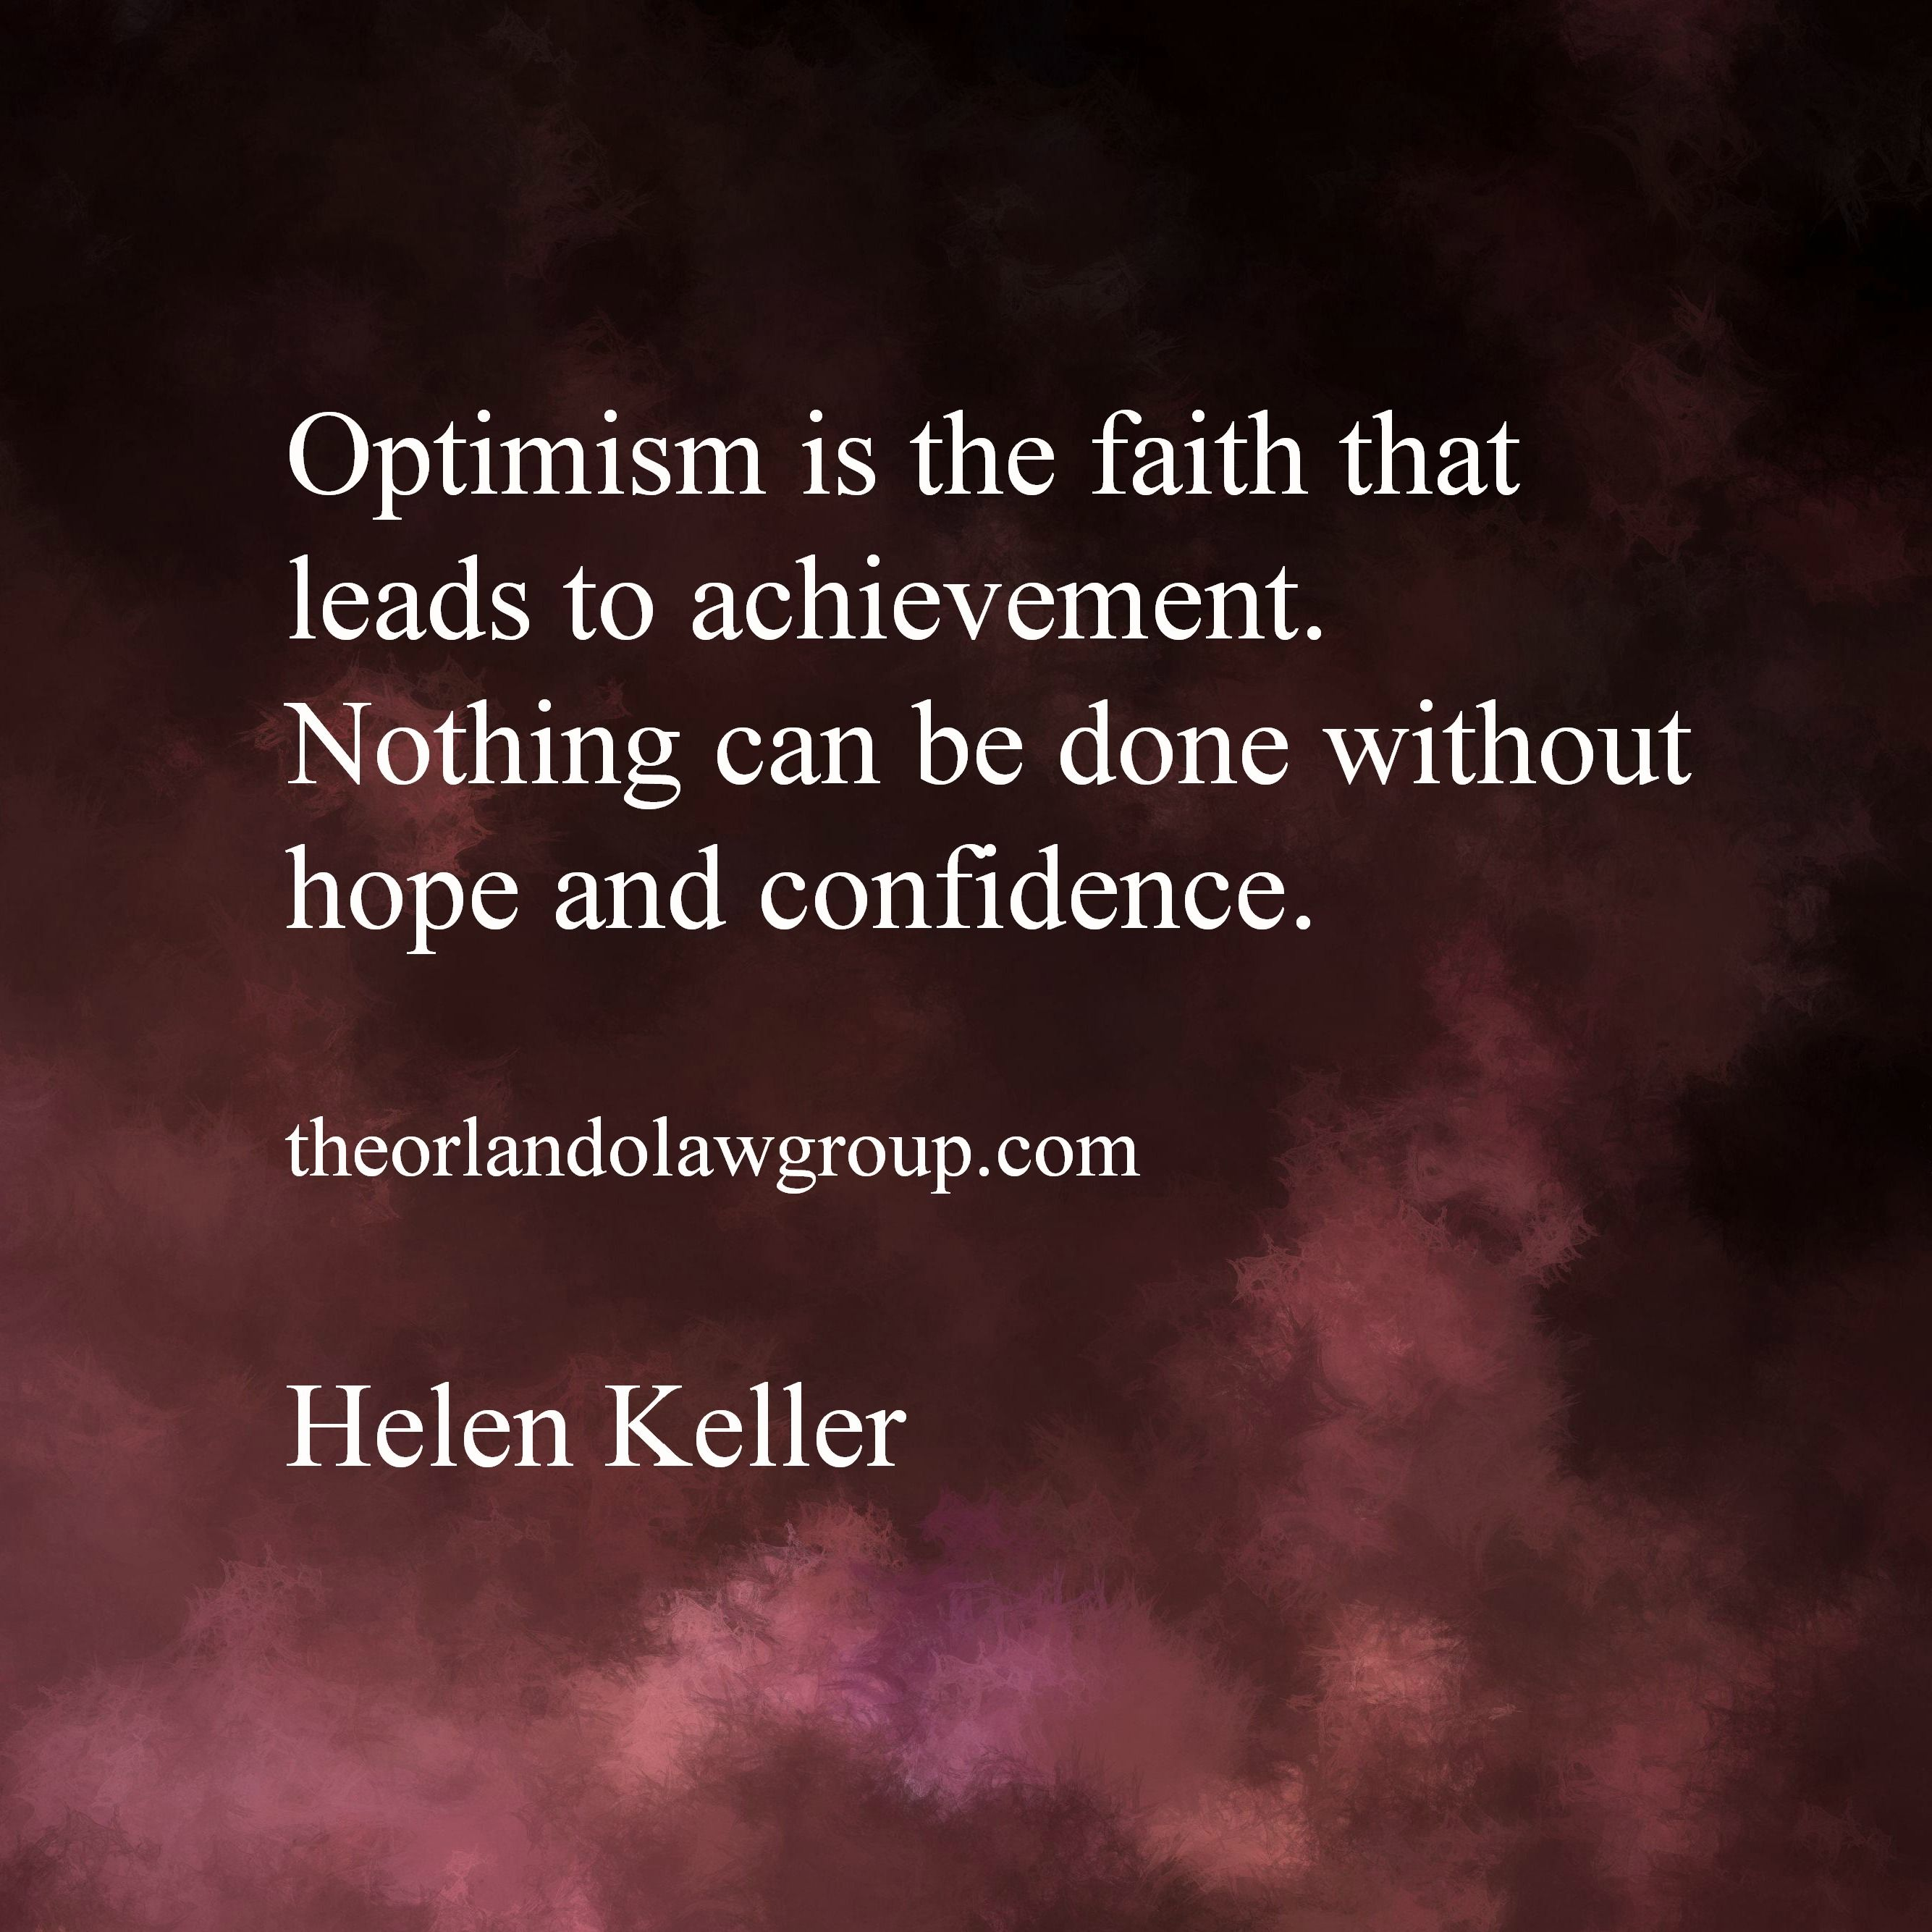 Optimism Is The Faith That Leads To Achievement Nothing Can Be Done Without Hope And Confidenc Business Inspiration Quotes Helen Keller Quotes Business Quotes